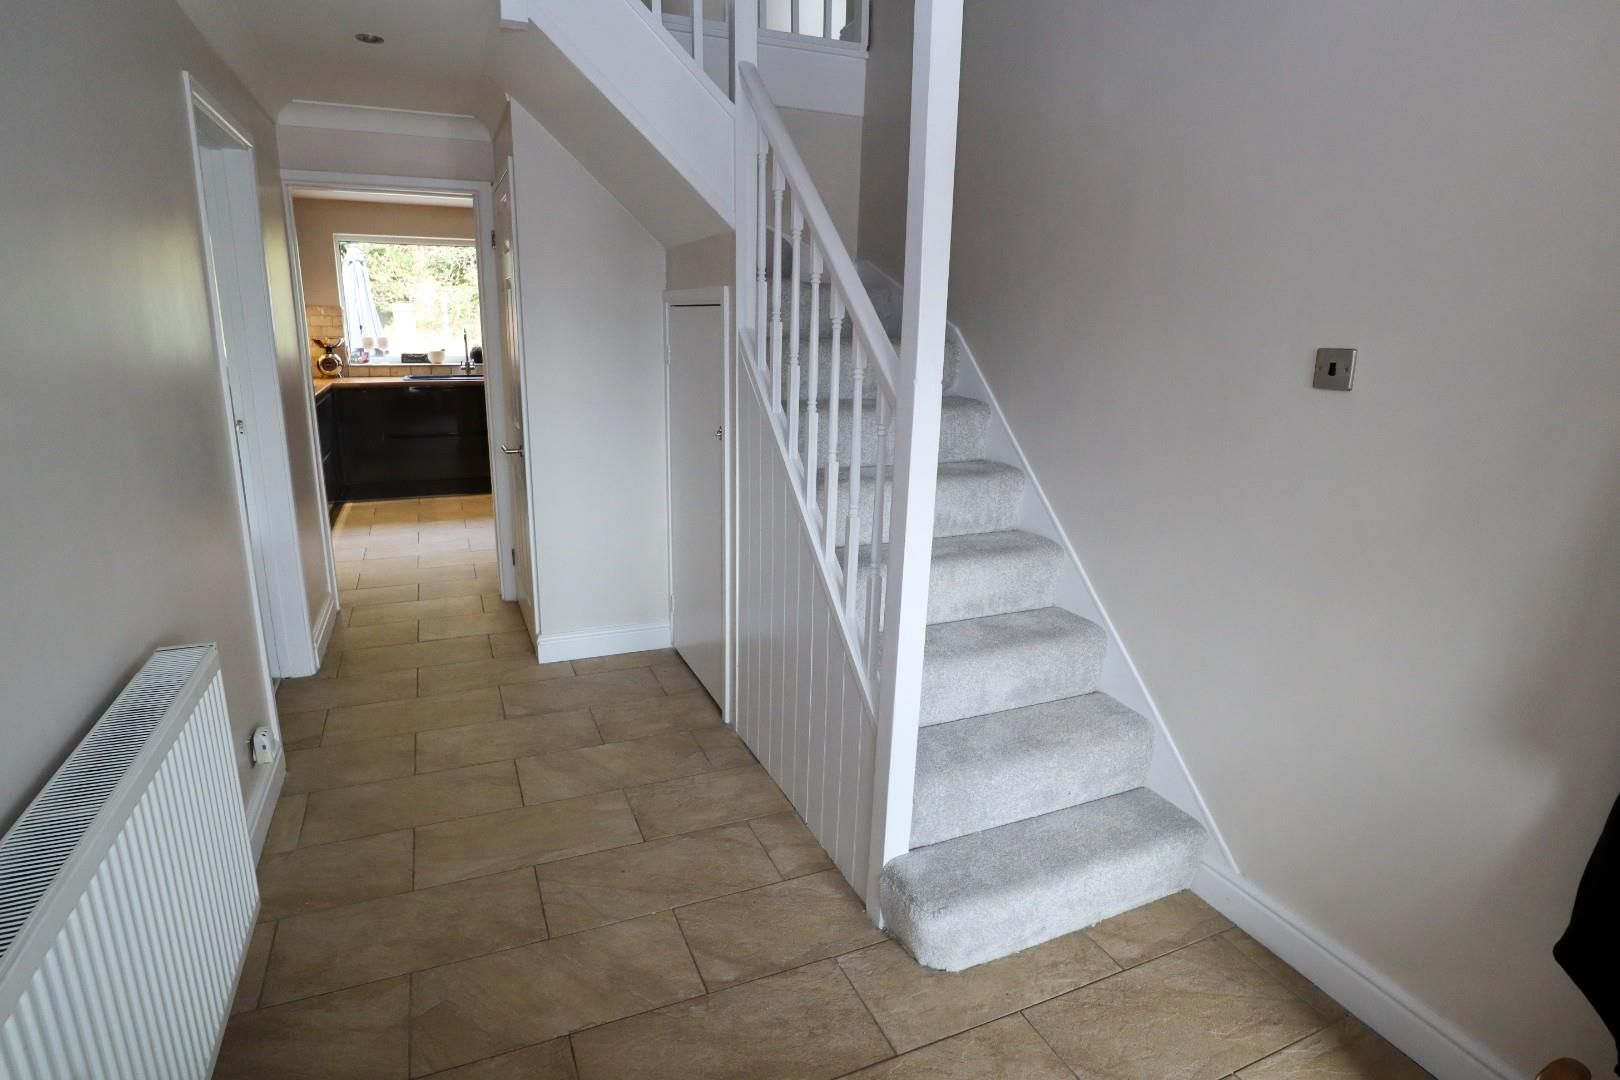 5 bed detached for sale in Blackwater 7